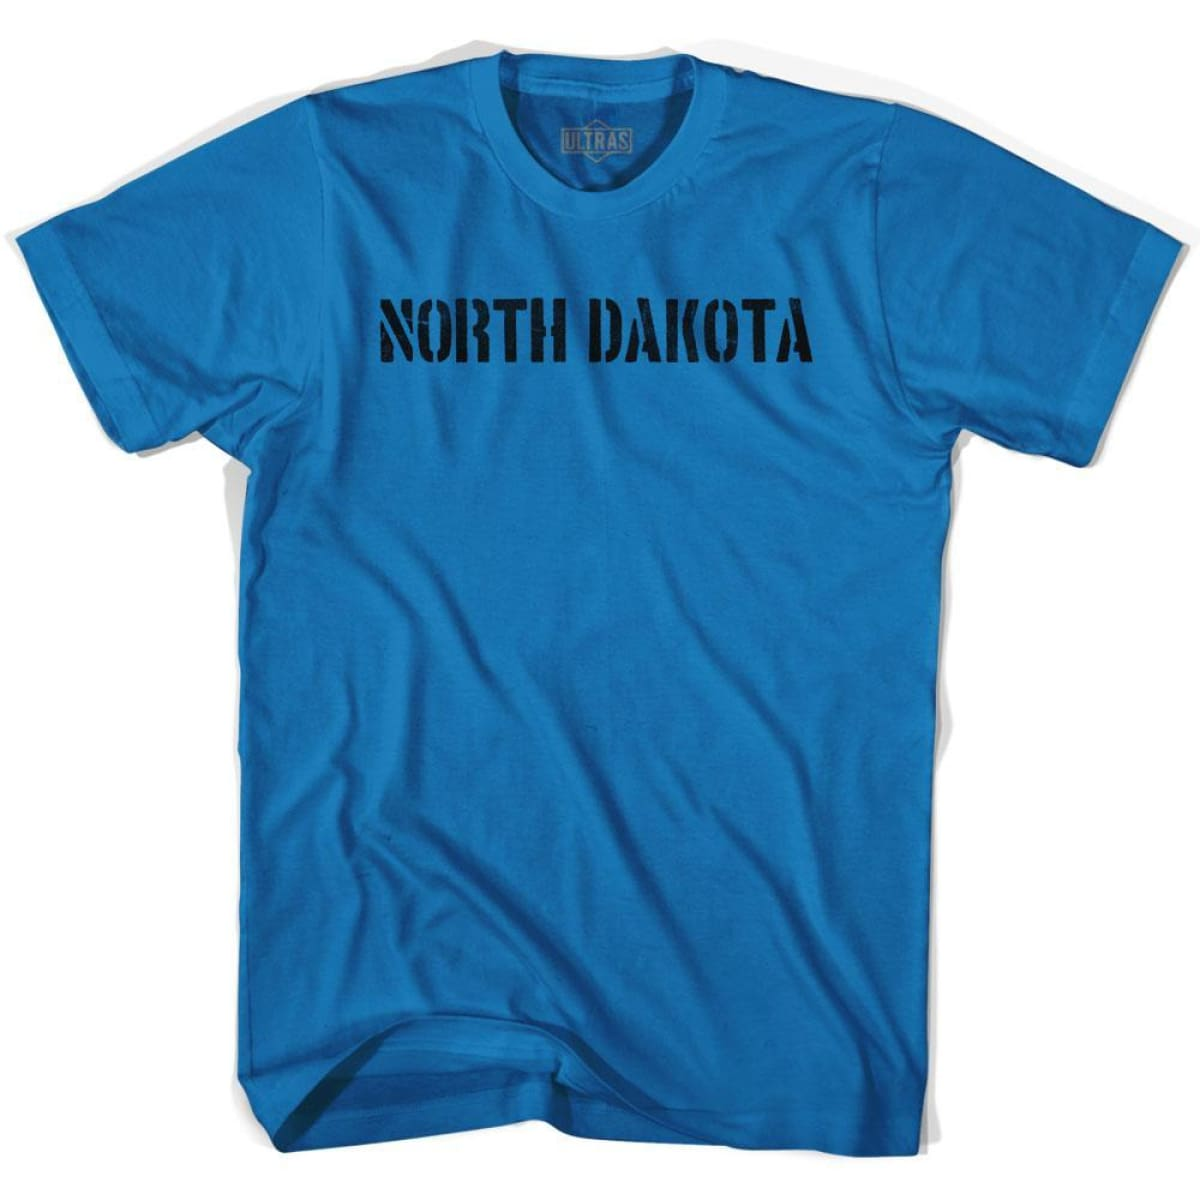 North Dakota State Stencil Adult Cotton T-shirt - Royal / Adult Small - Stencil State